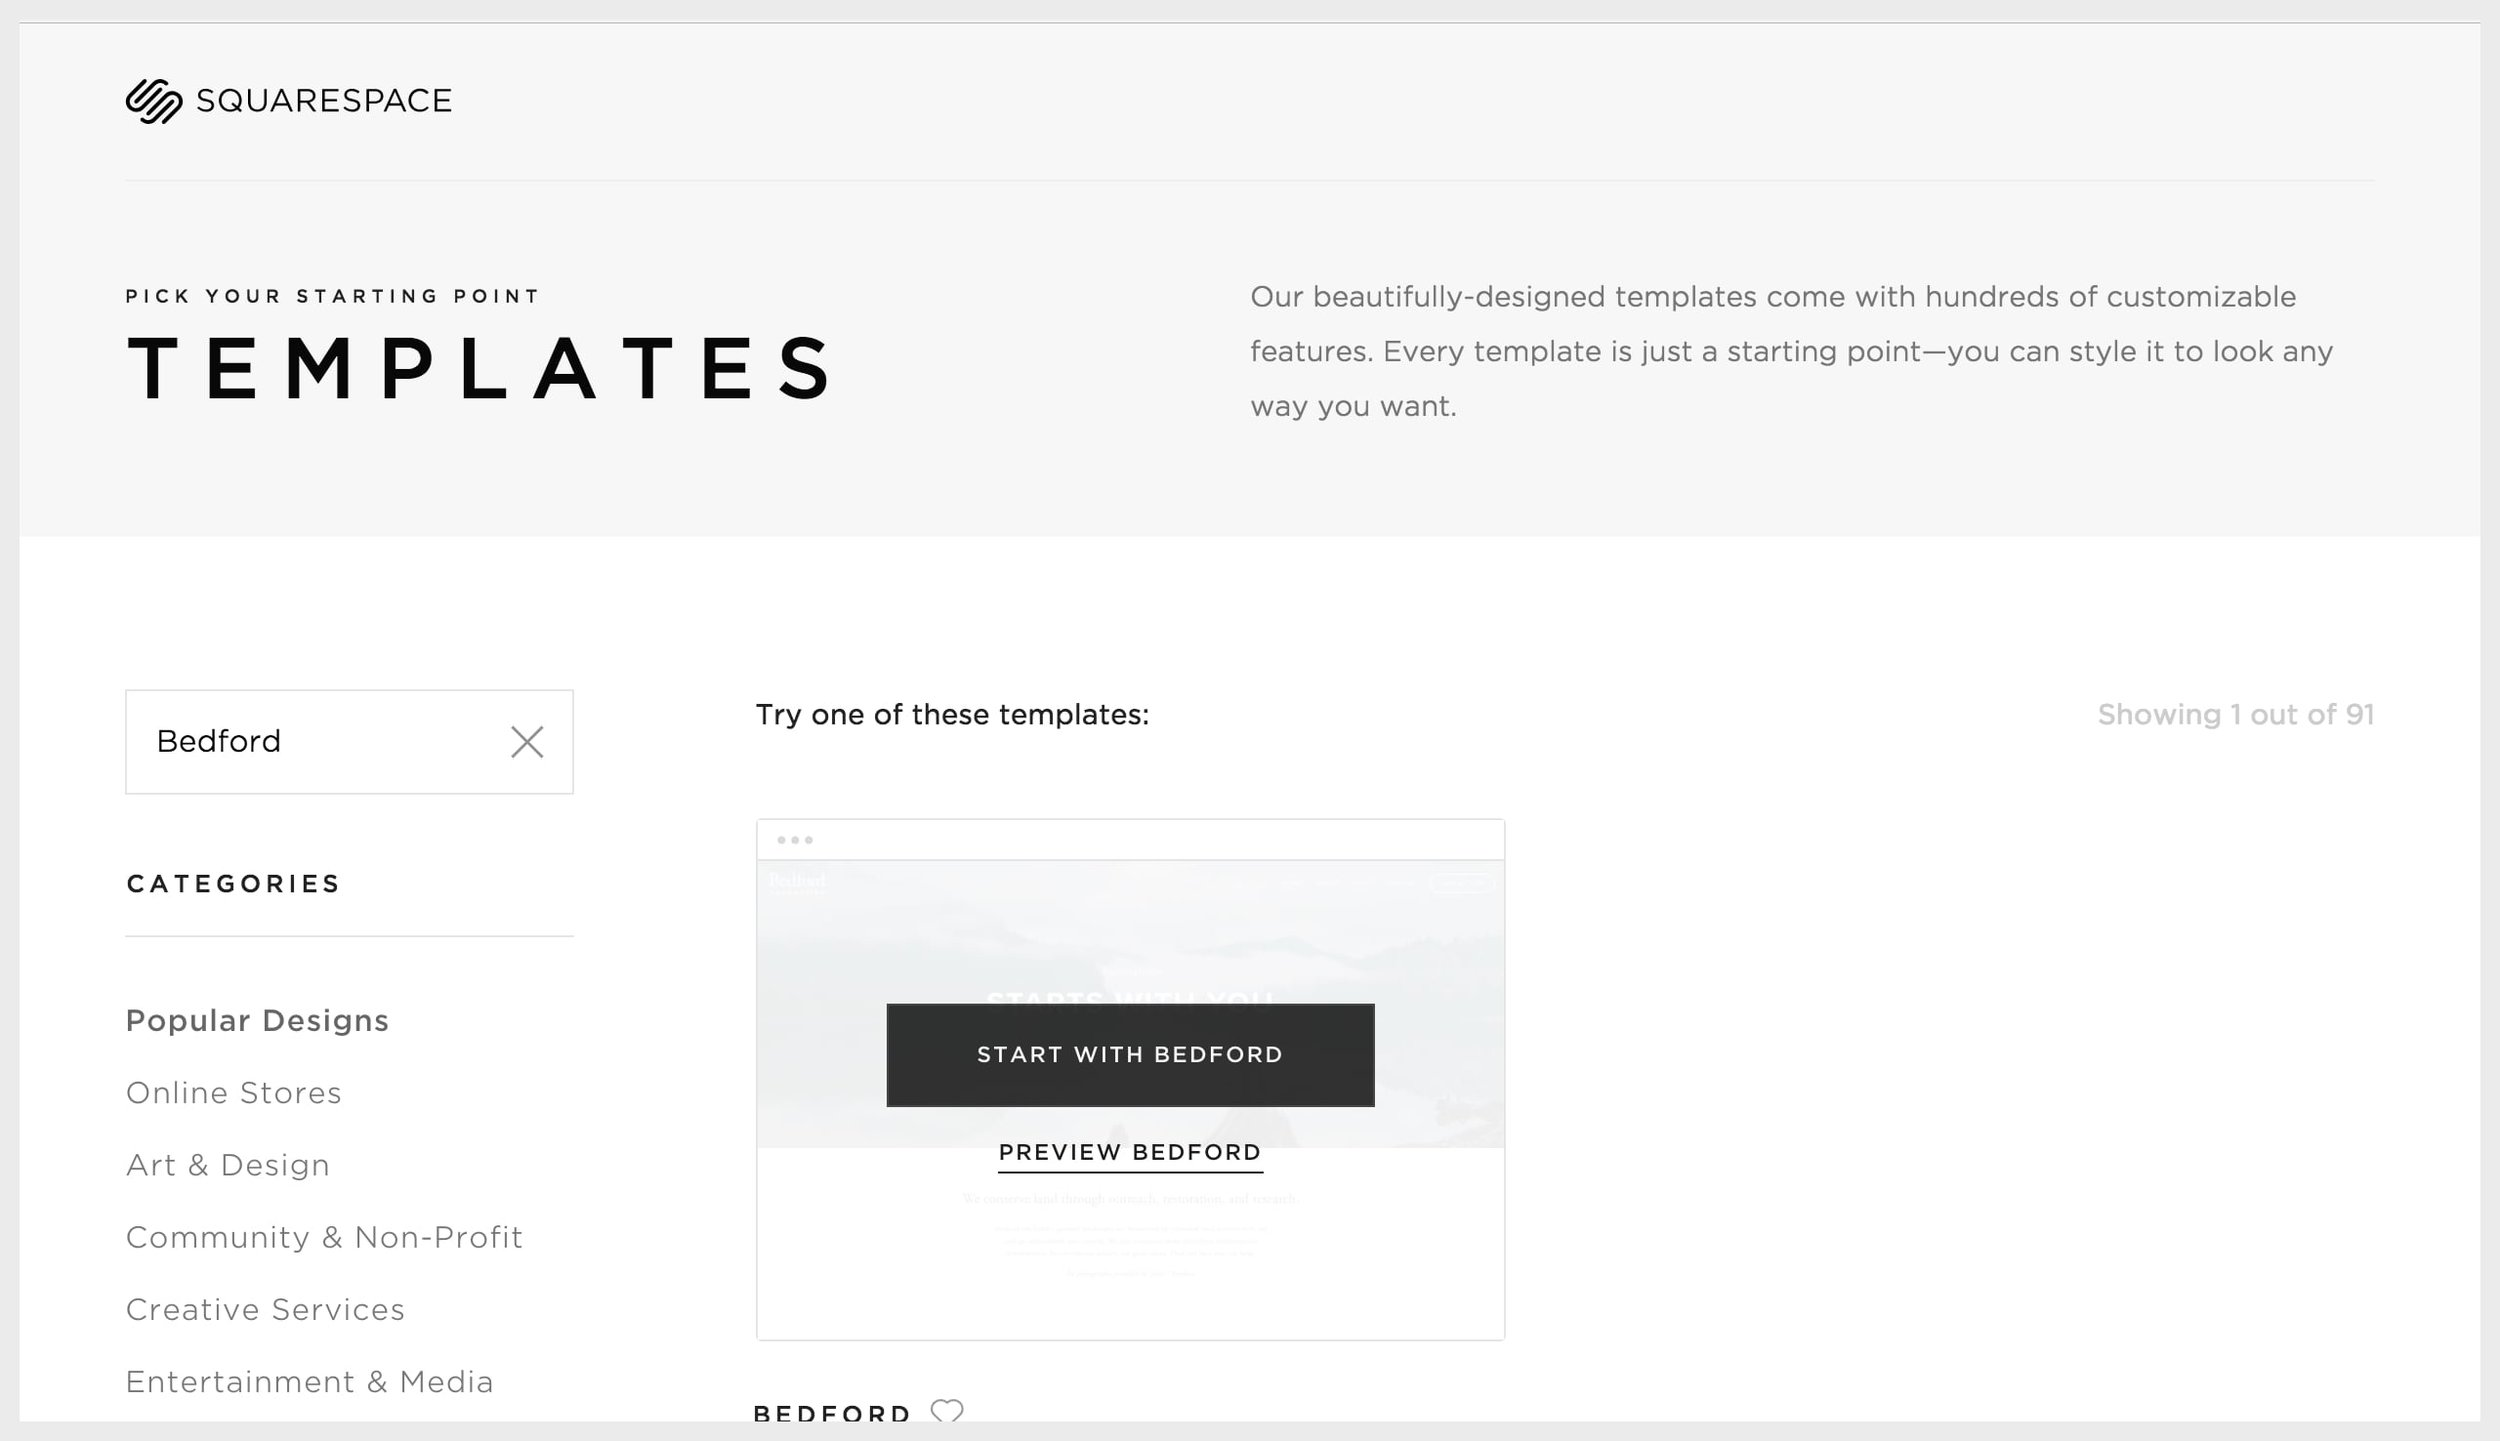 Install and preview a Squarespace template